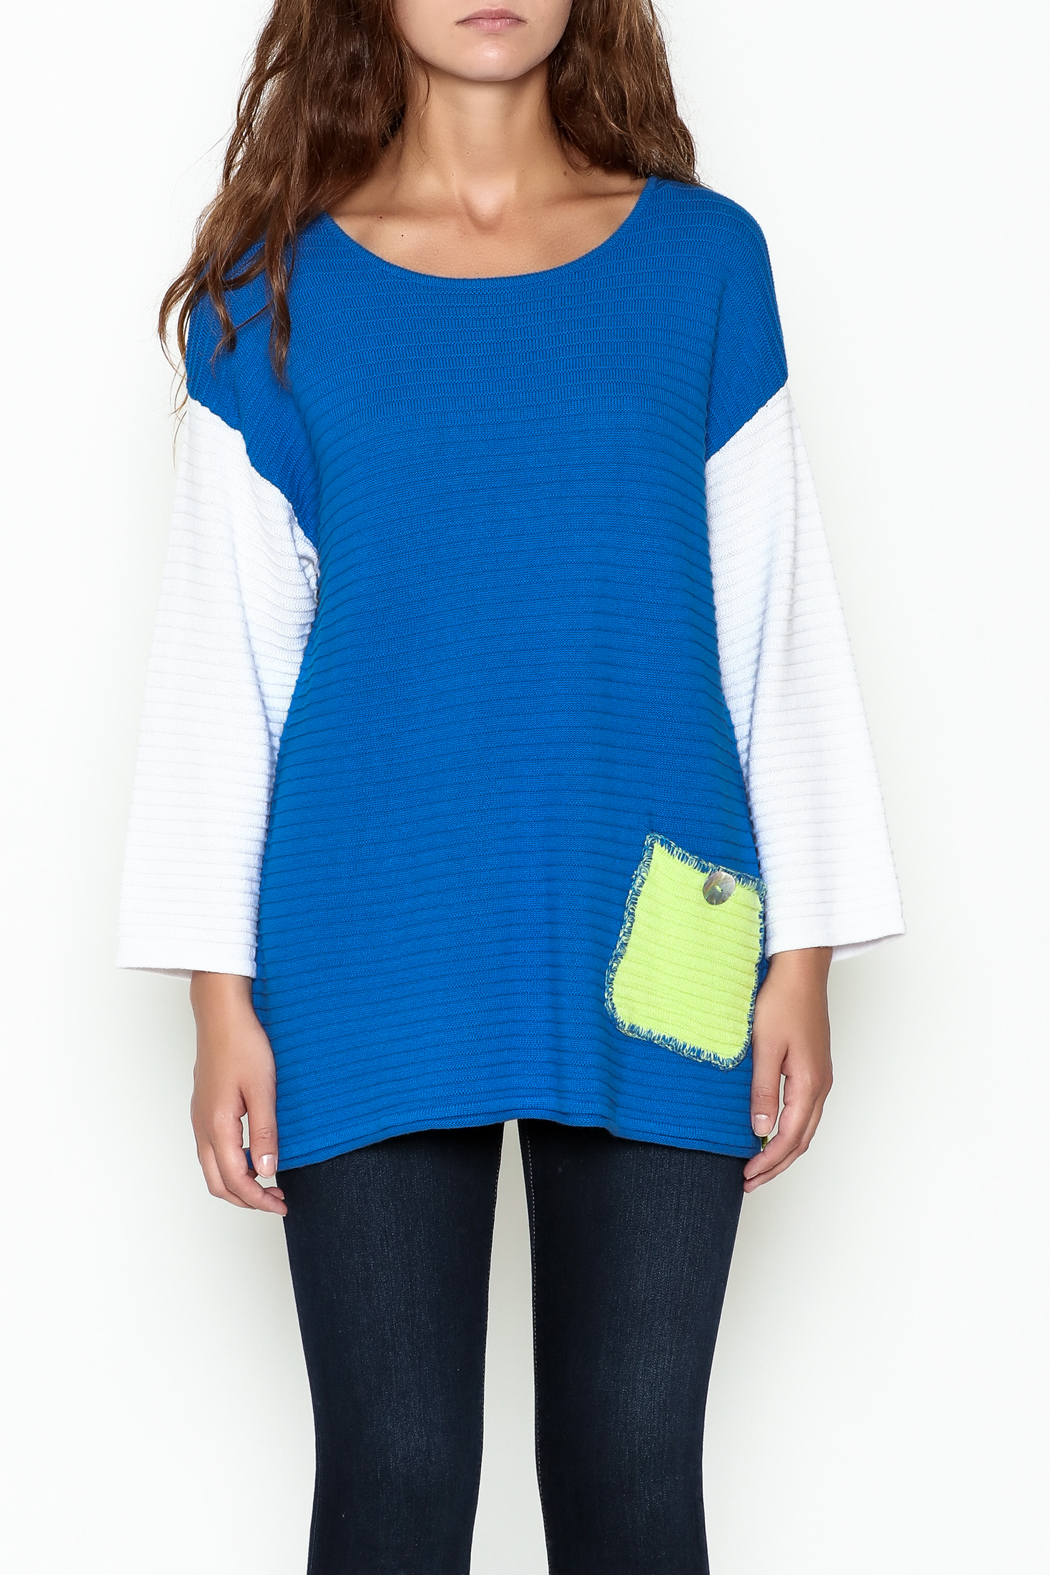 Lulu B Color Block Sweater - Front Full Image